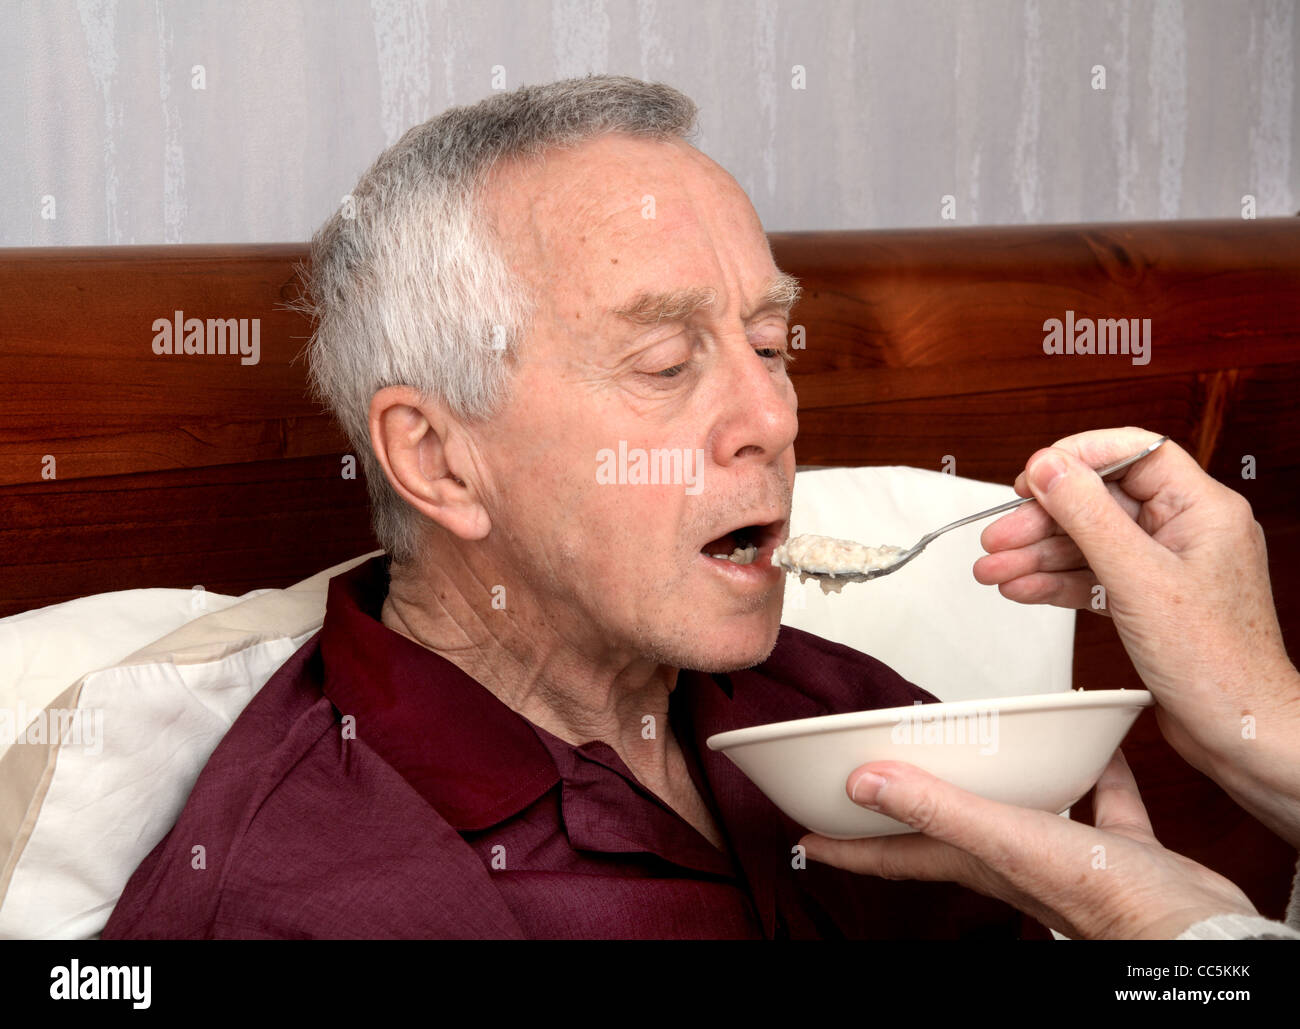 A bedbound man in his 60's being fed by his wife/carer - Stock Image